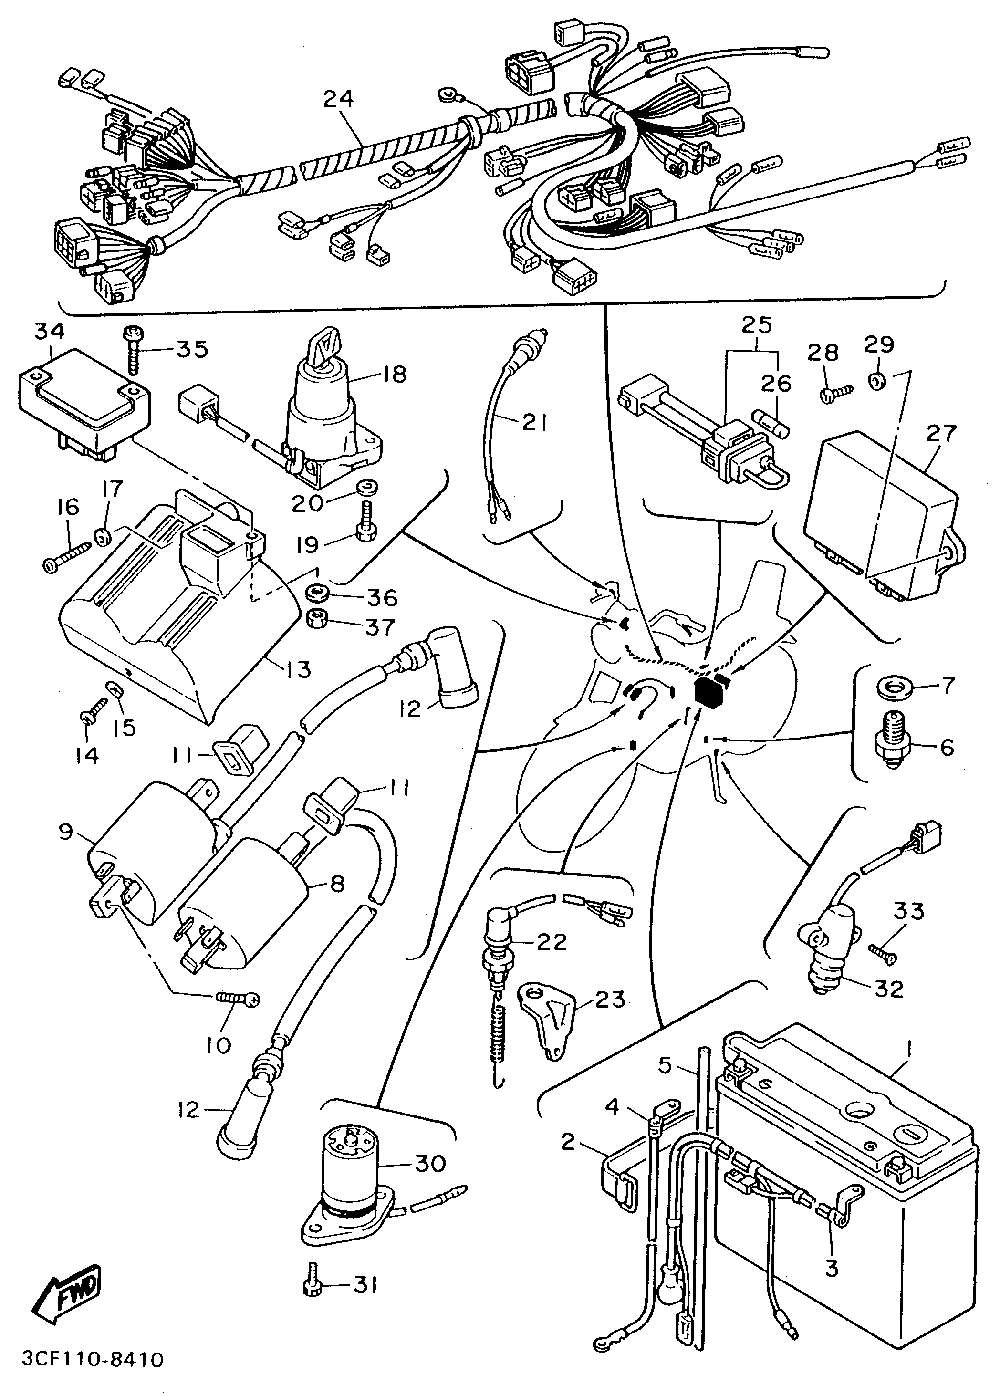 [DIAGRAM] 7 Pole Trailer Plug Wiring Diagram Bat Stay On